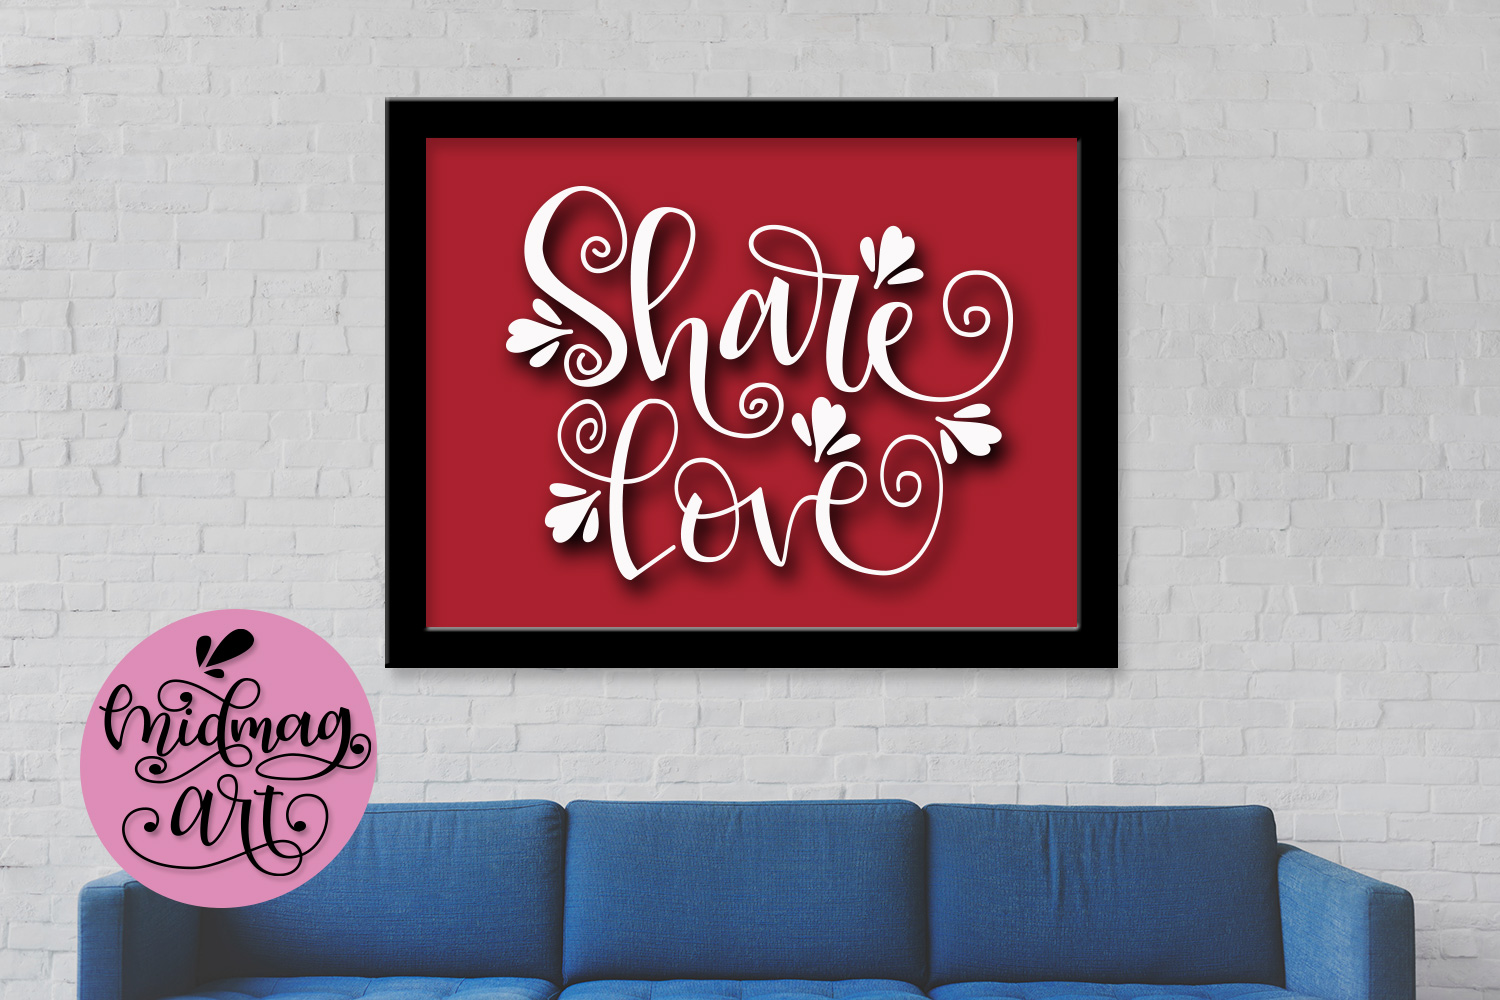 Share love svg, png, jpeg, eps and dxf example image 3